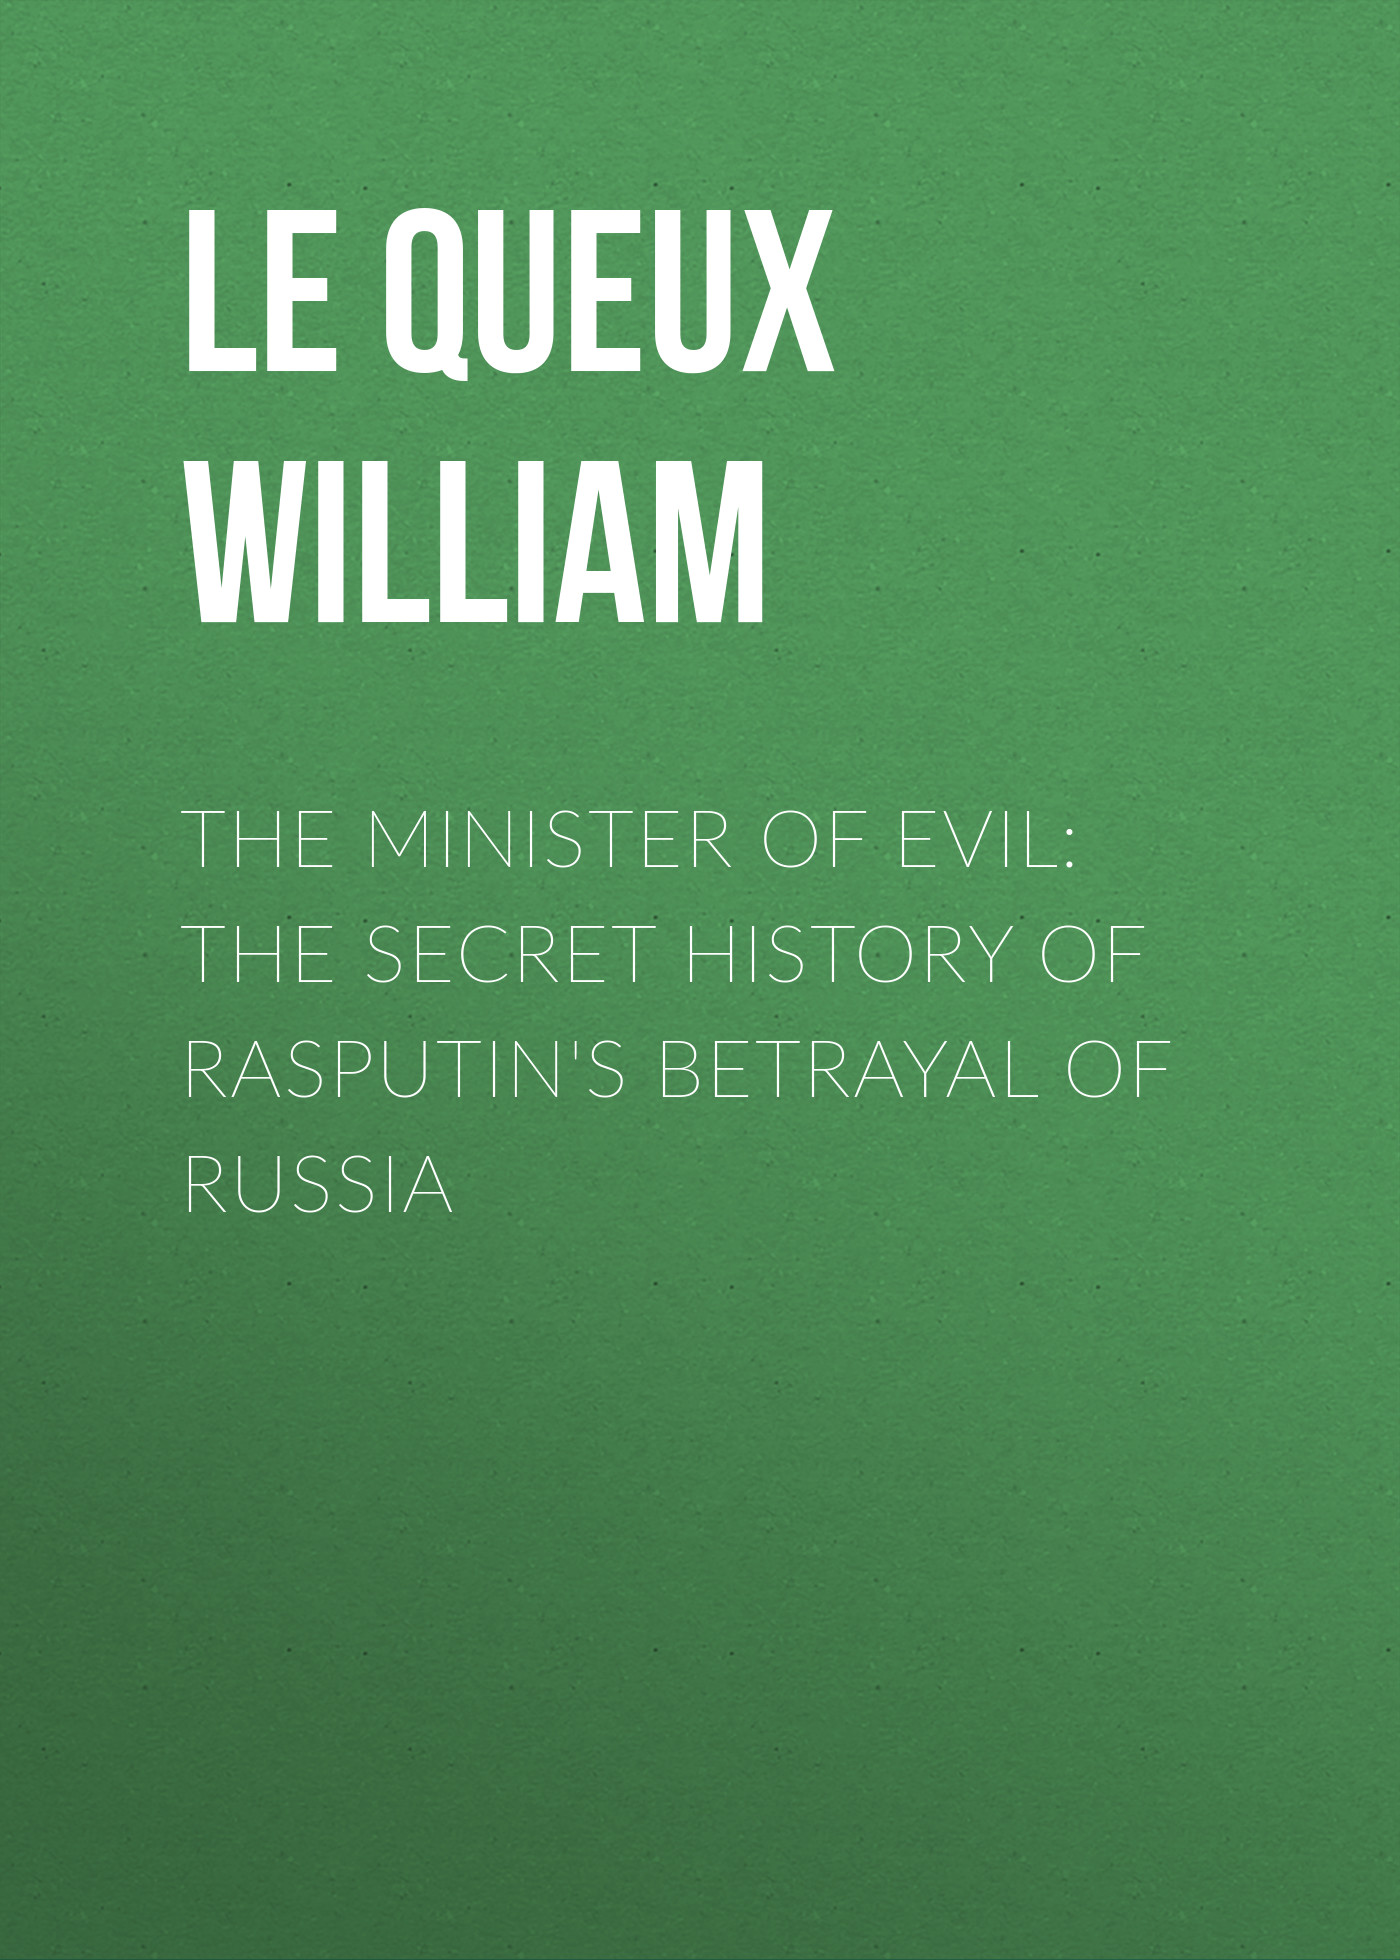 лучшая цена Le Queux William The Minister of Evil: The Secret History of Rasputin's Betrayal of Russia